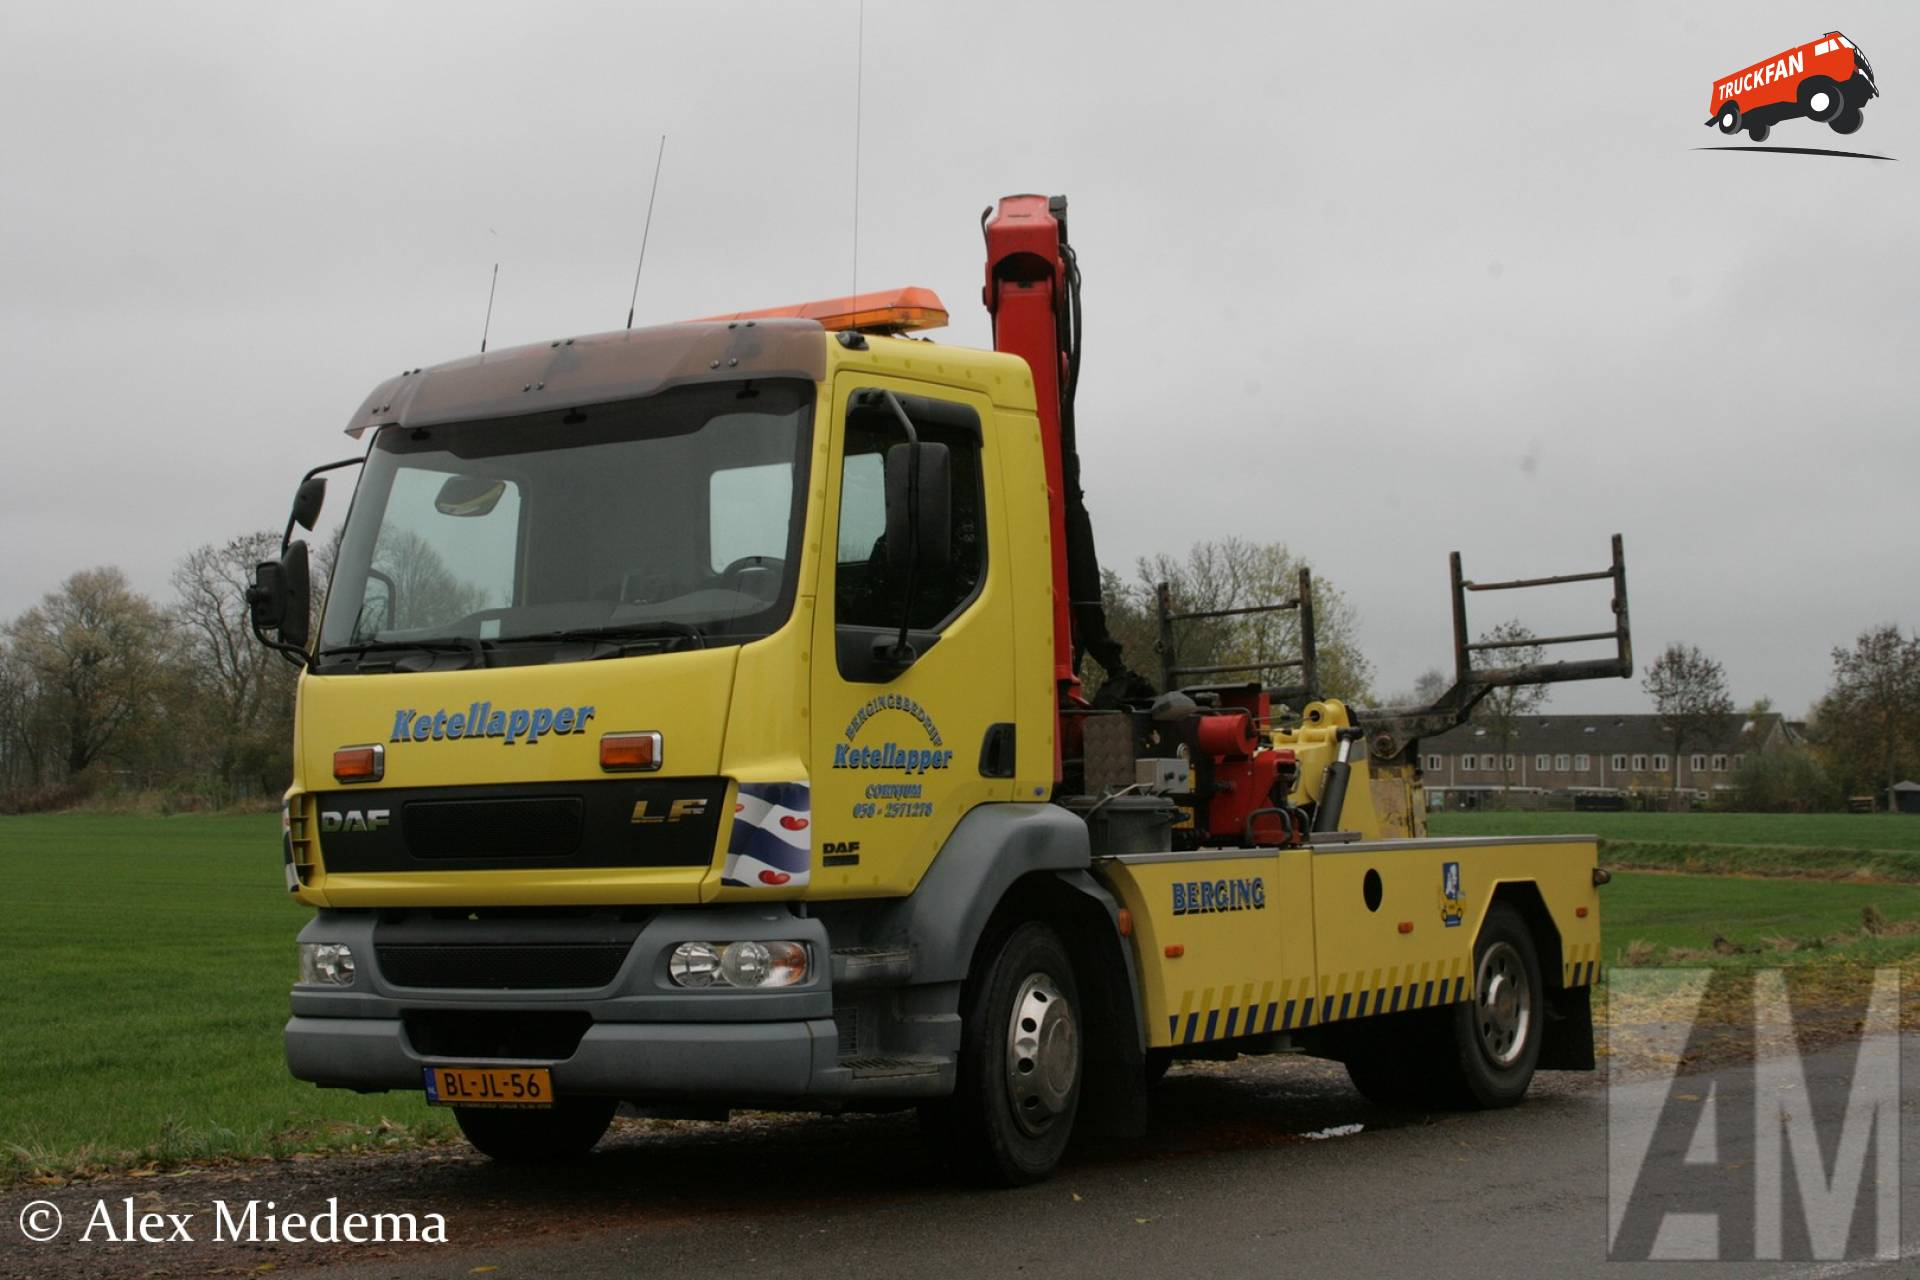 Foto daf lf55 van garage en bergingsbedrijf ketellapper for Garage daf tours